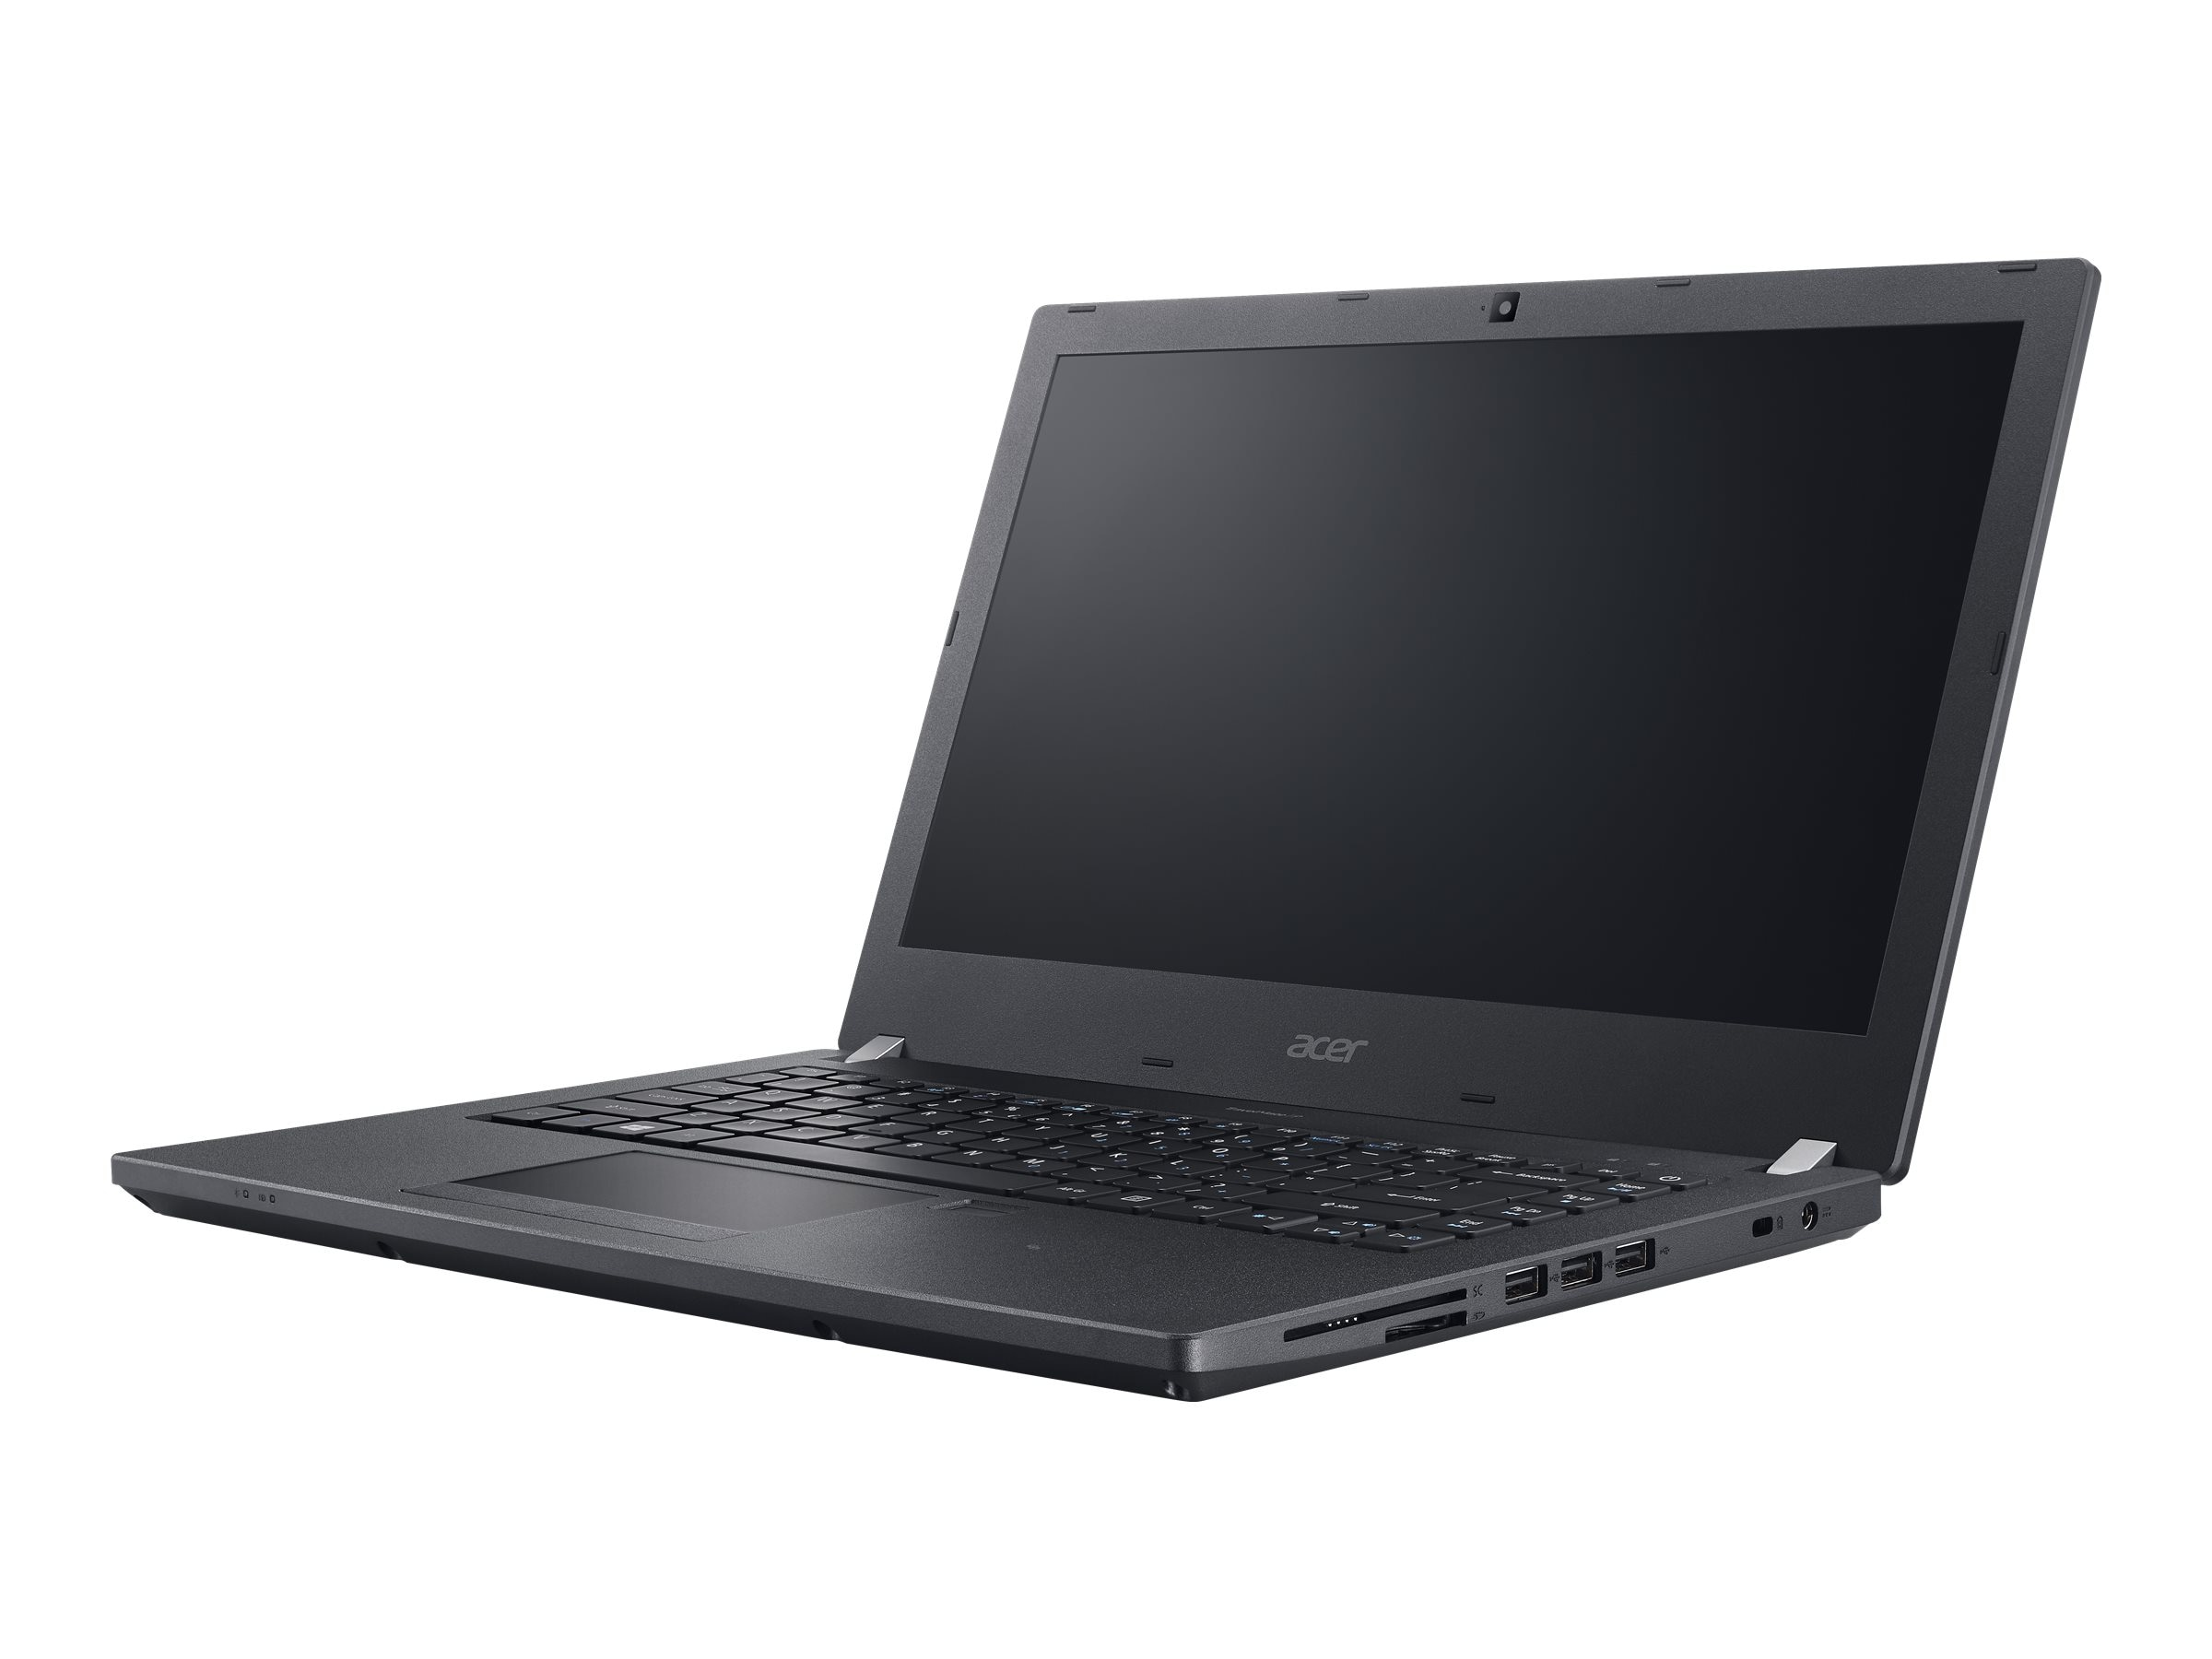 Acer TravelMate P449-M-39MM Core i3-6100U 2.3GHz 4GB 128GB SSD ac BT WC 4C 14 HD W7P64-W10P64